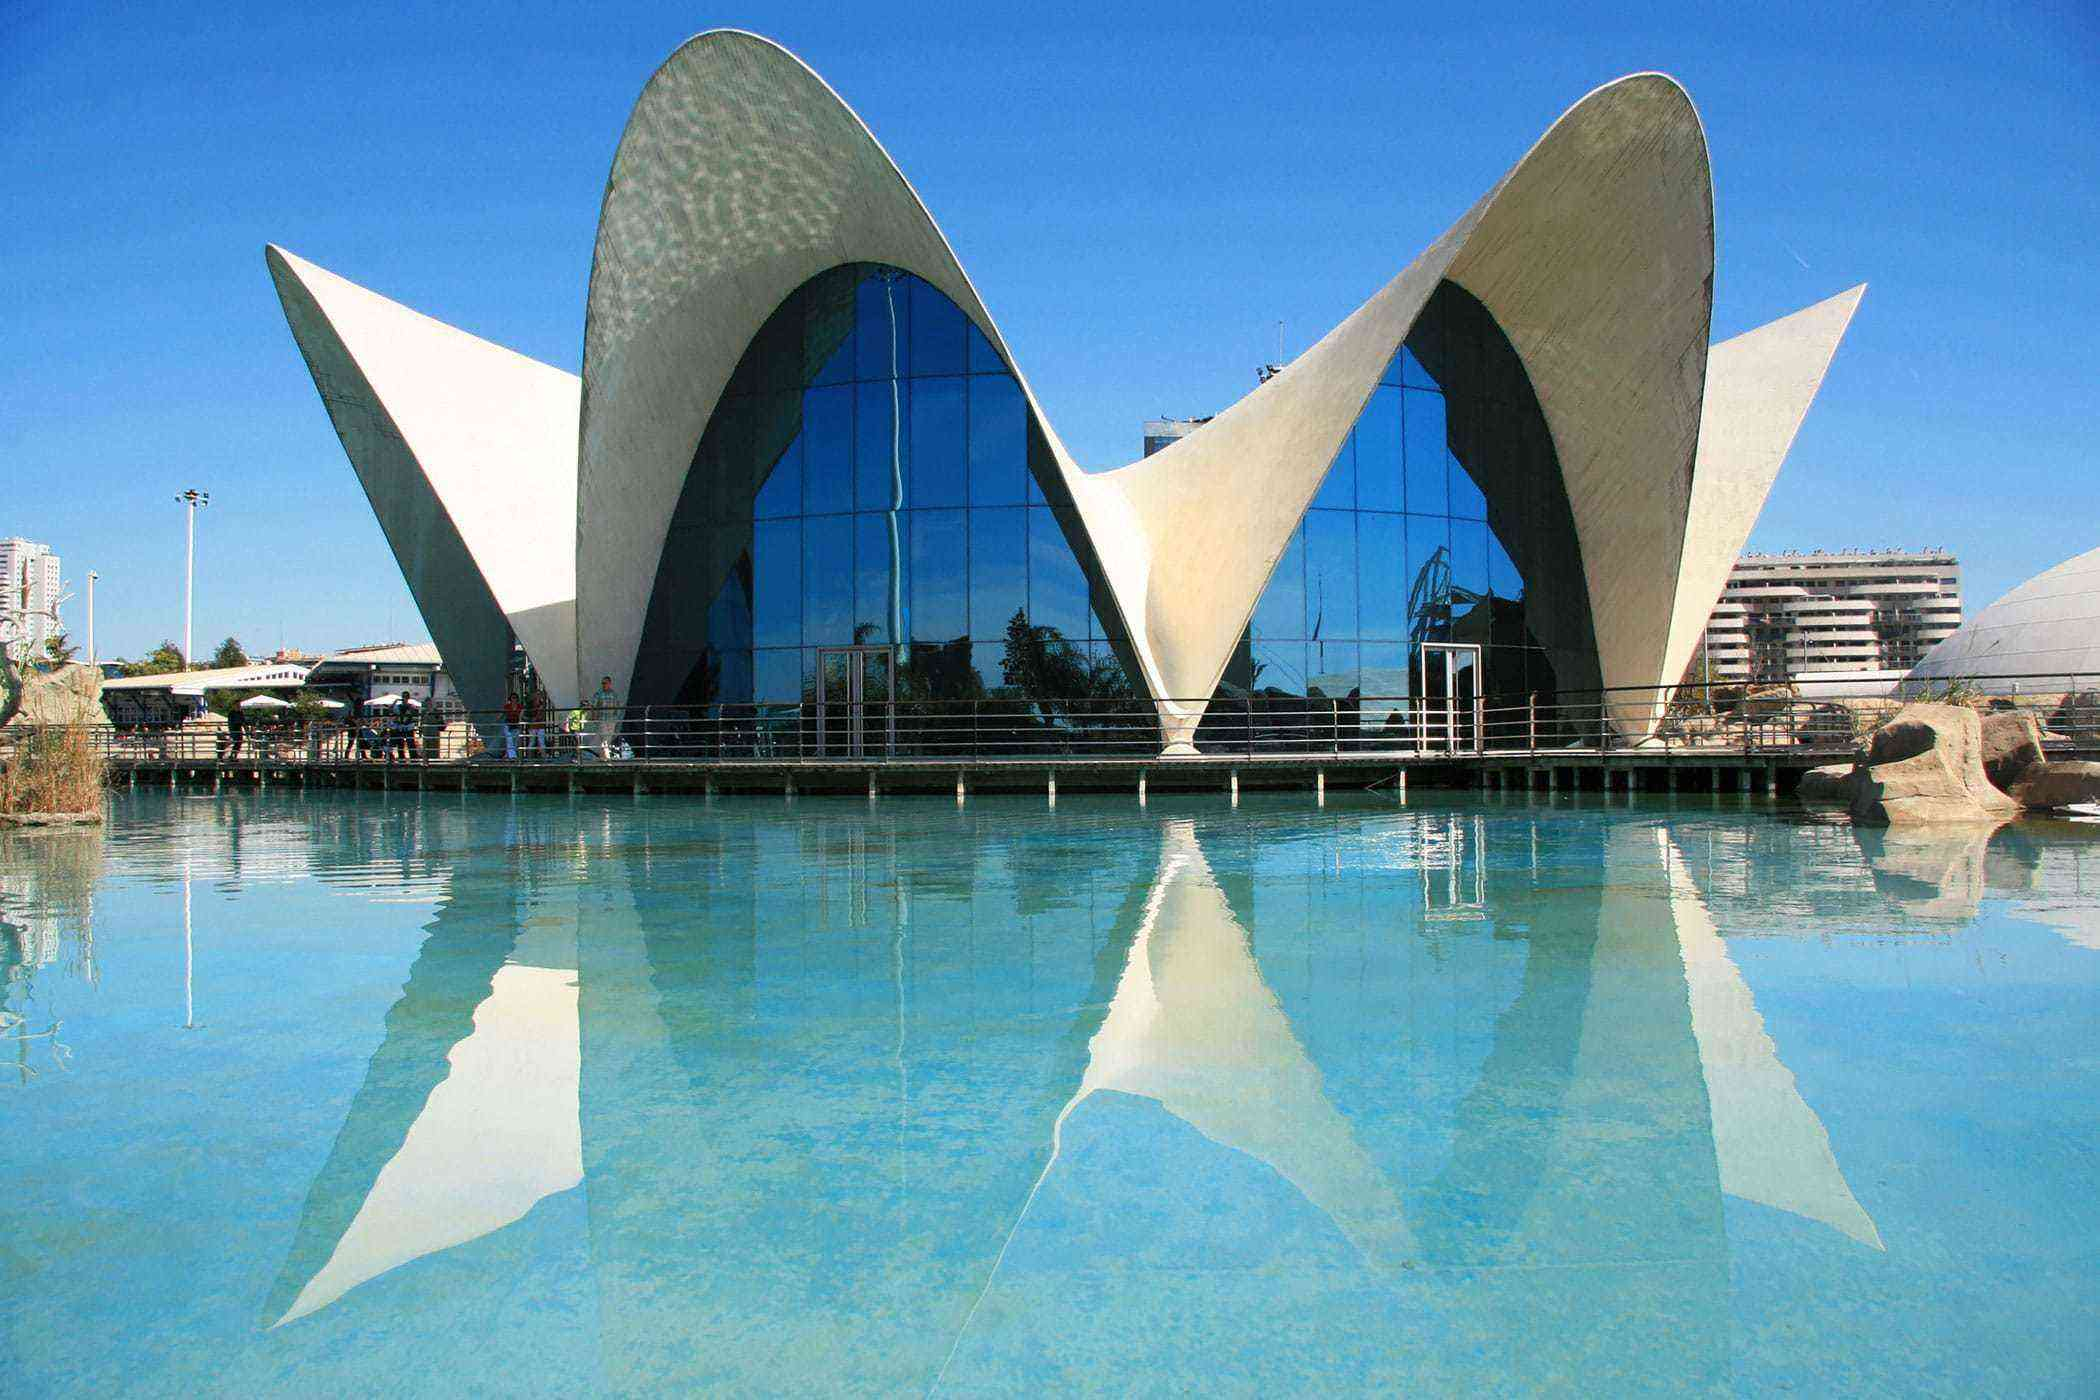 The  Valencia, Architecture Curiously of Unique Spain